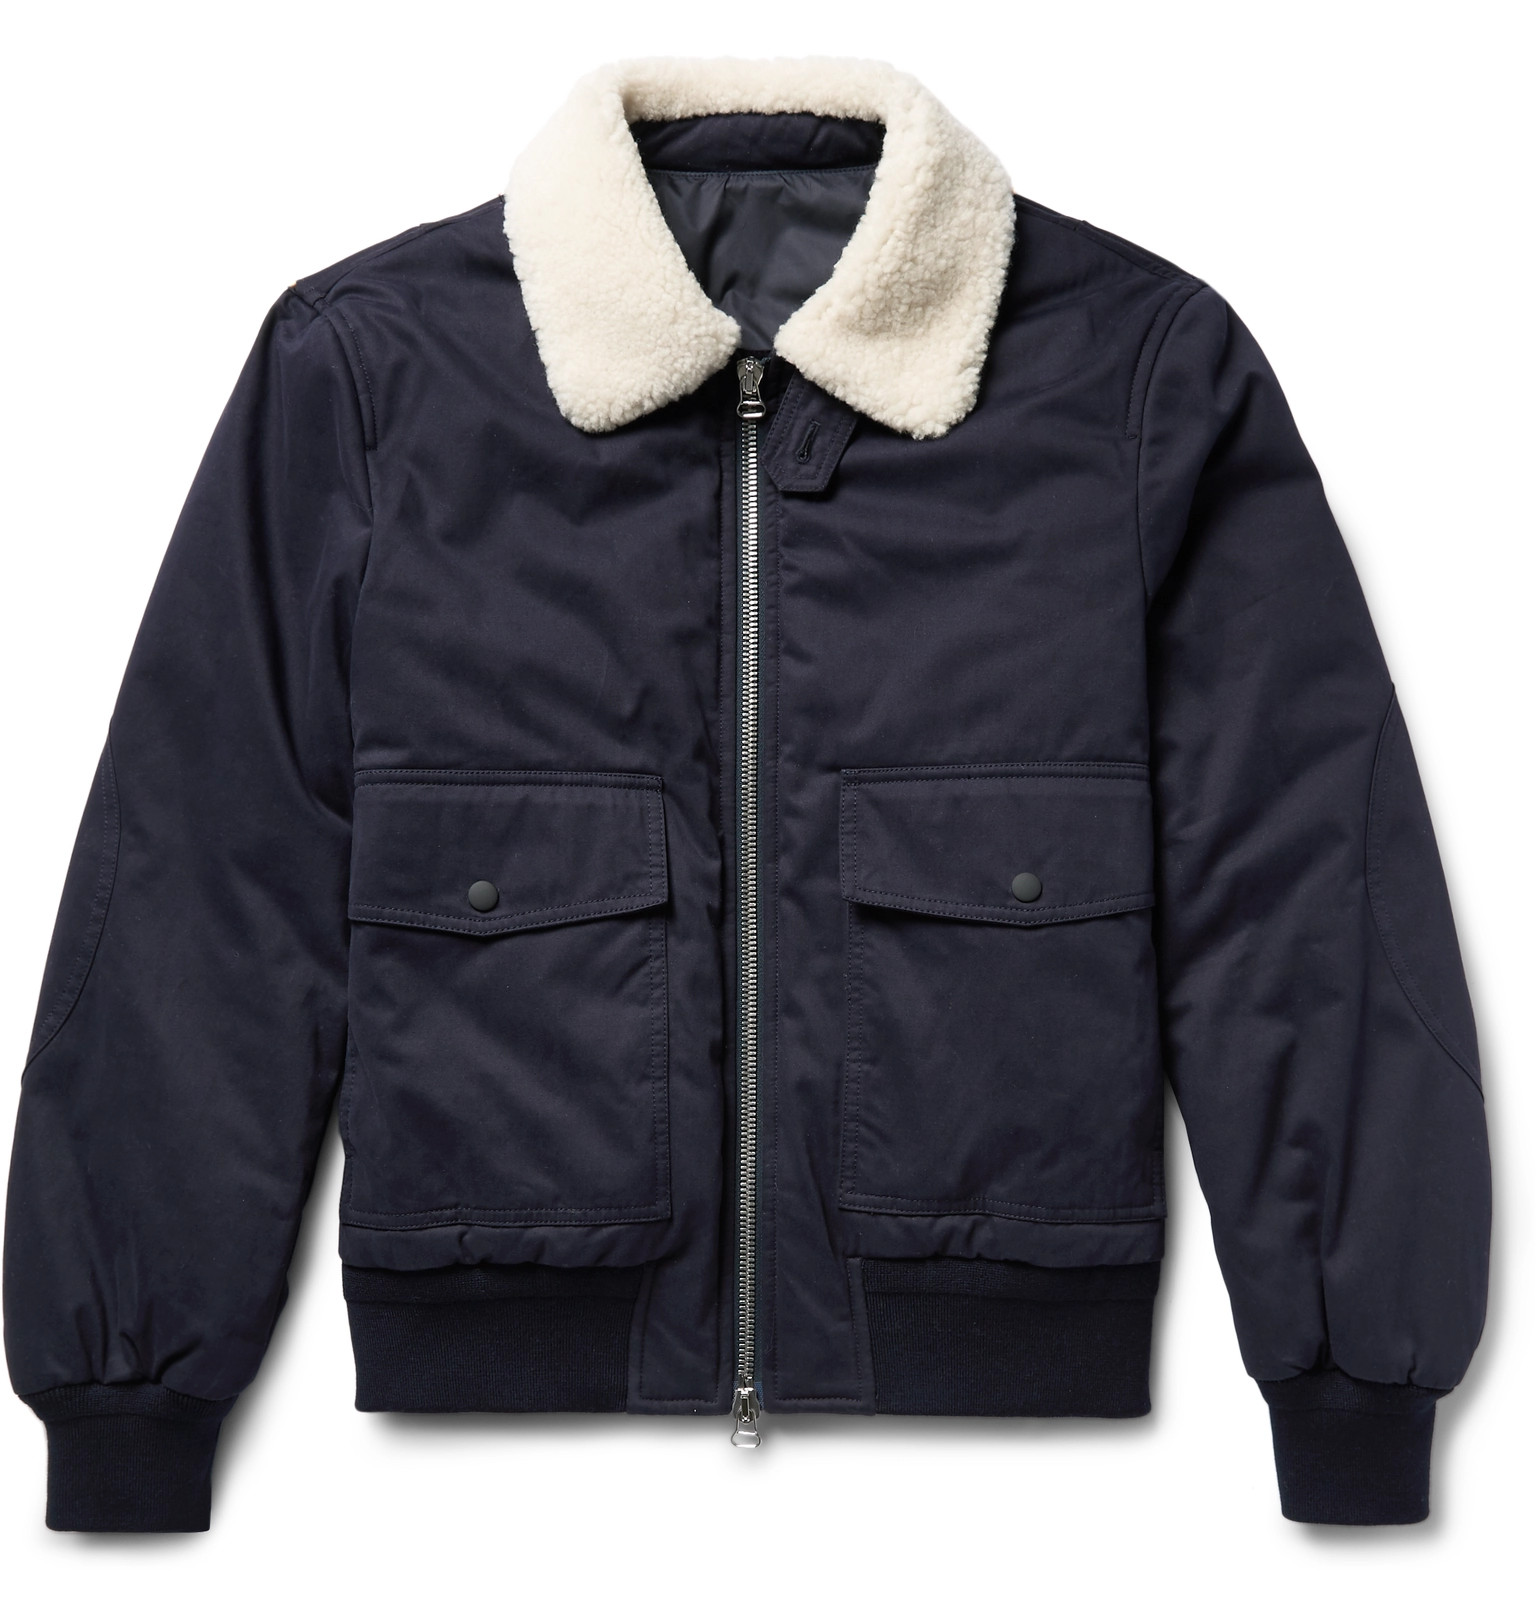 Bomber Jackets for Men | Designer Menswear | MR PORTER